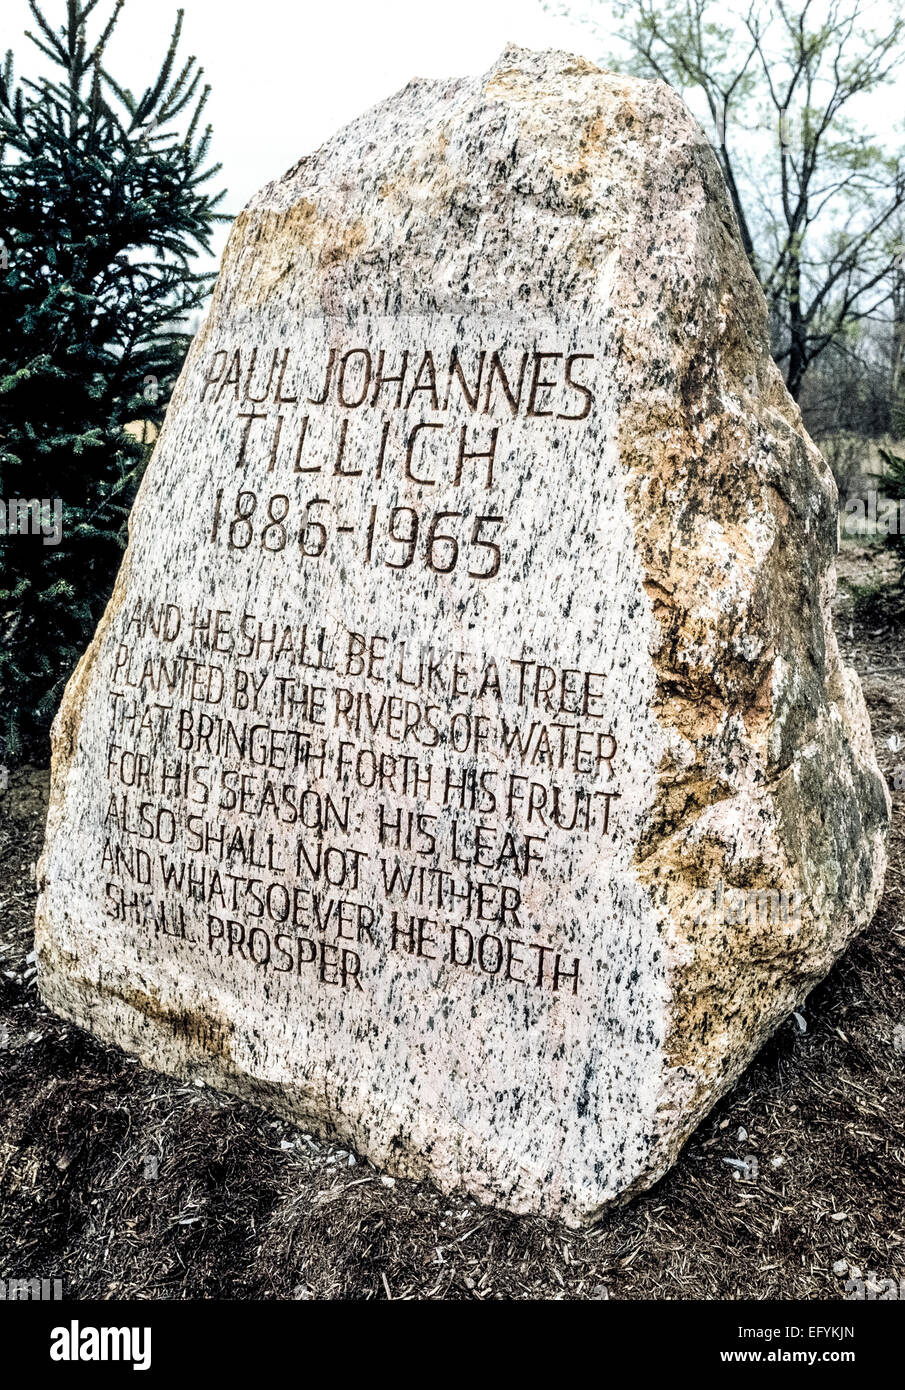 The ashes of well-known German-born theologian and philosopher Paul Tillich are buried beneath this modest gravestone - Stock Image